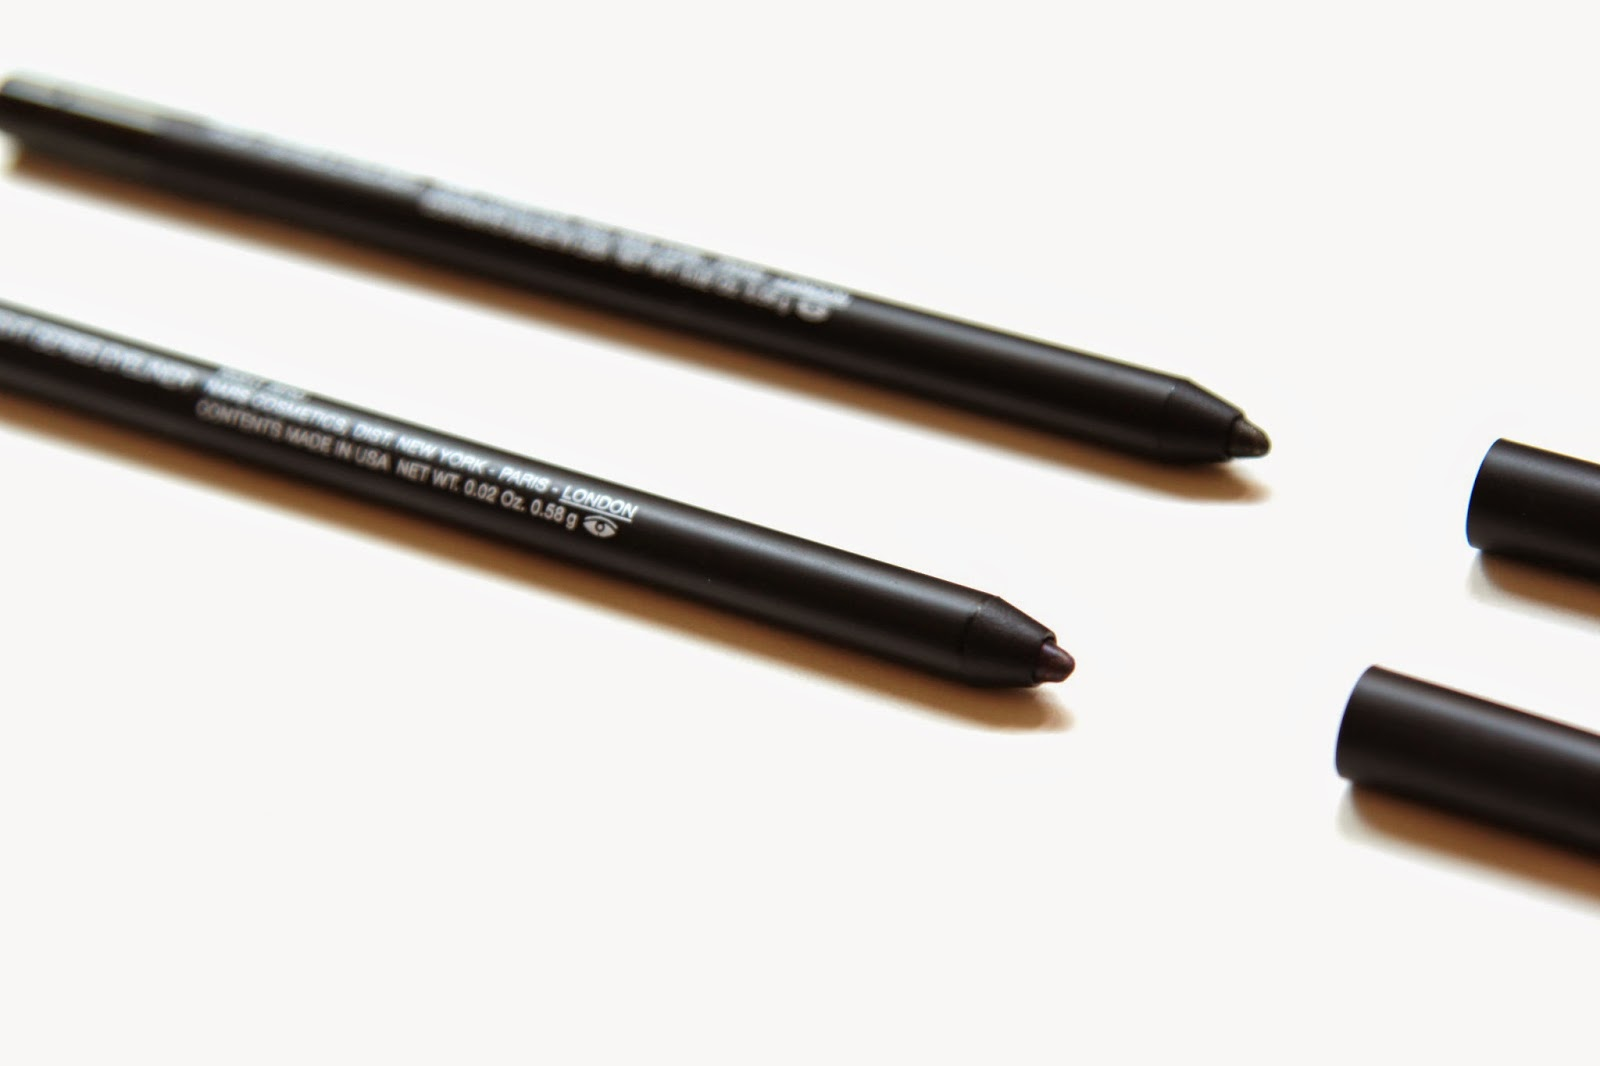 NARS Larger than life eyeliner night series